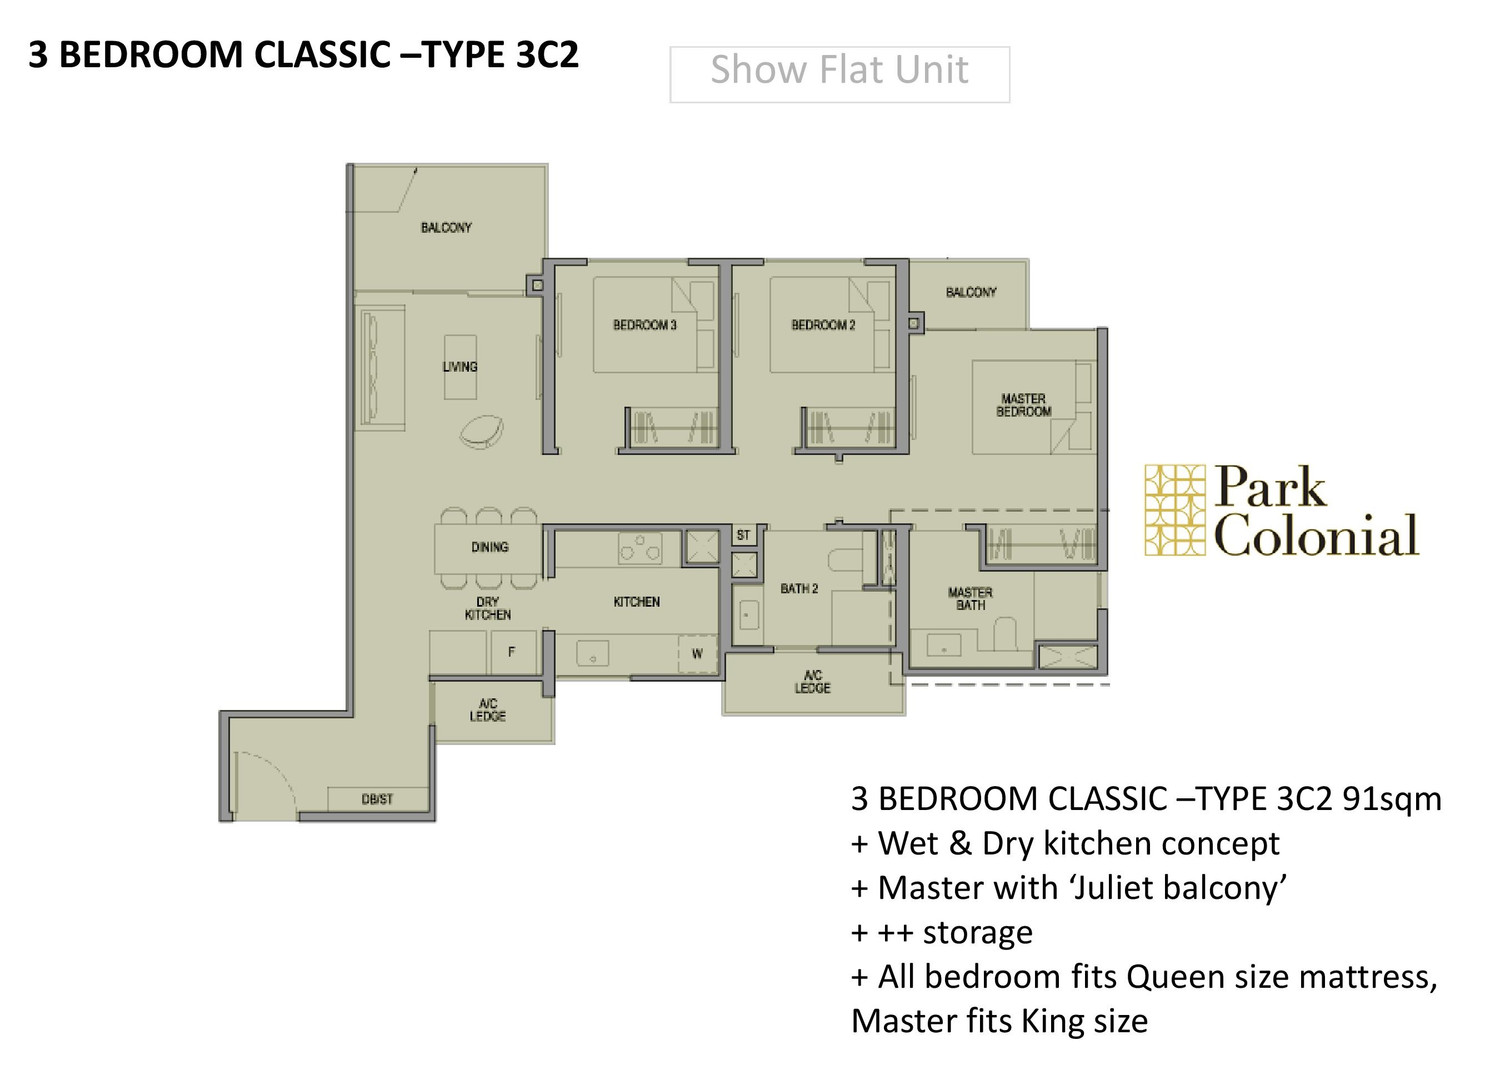 Park Colonial 3 Bedroom Classic - Type 3C2.